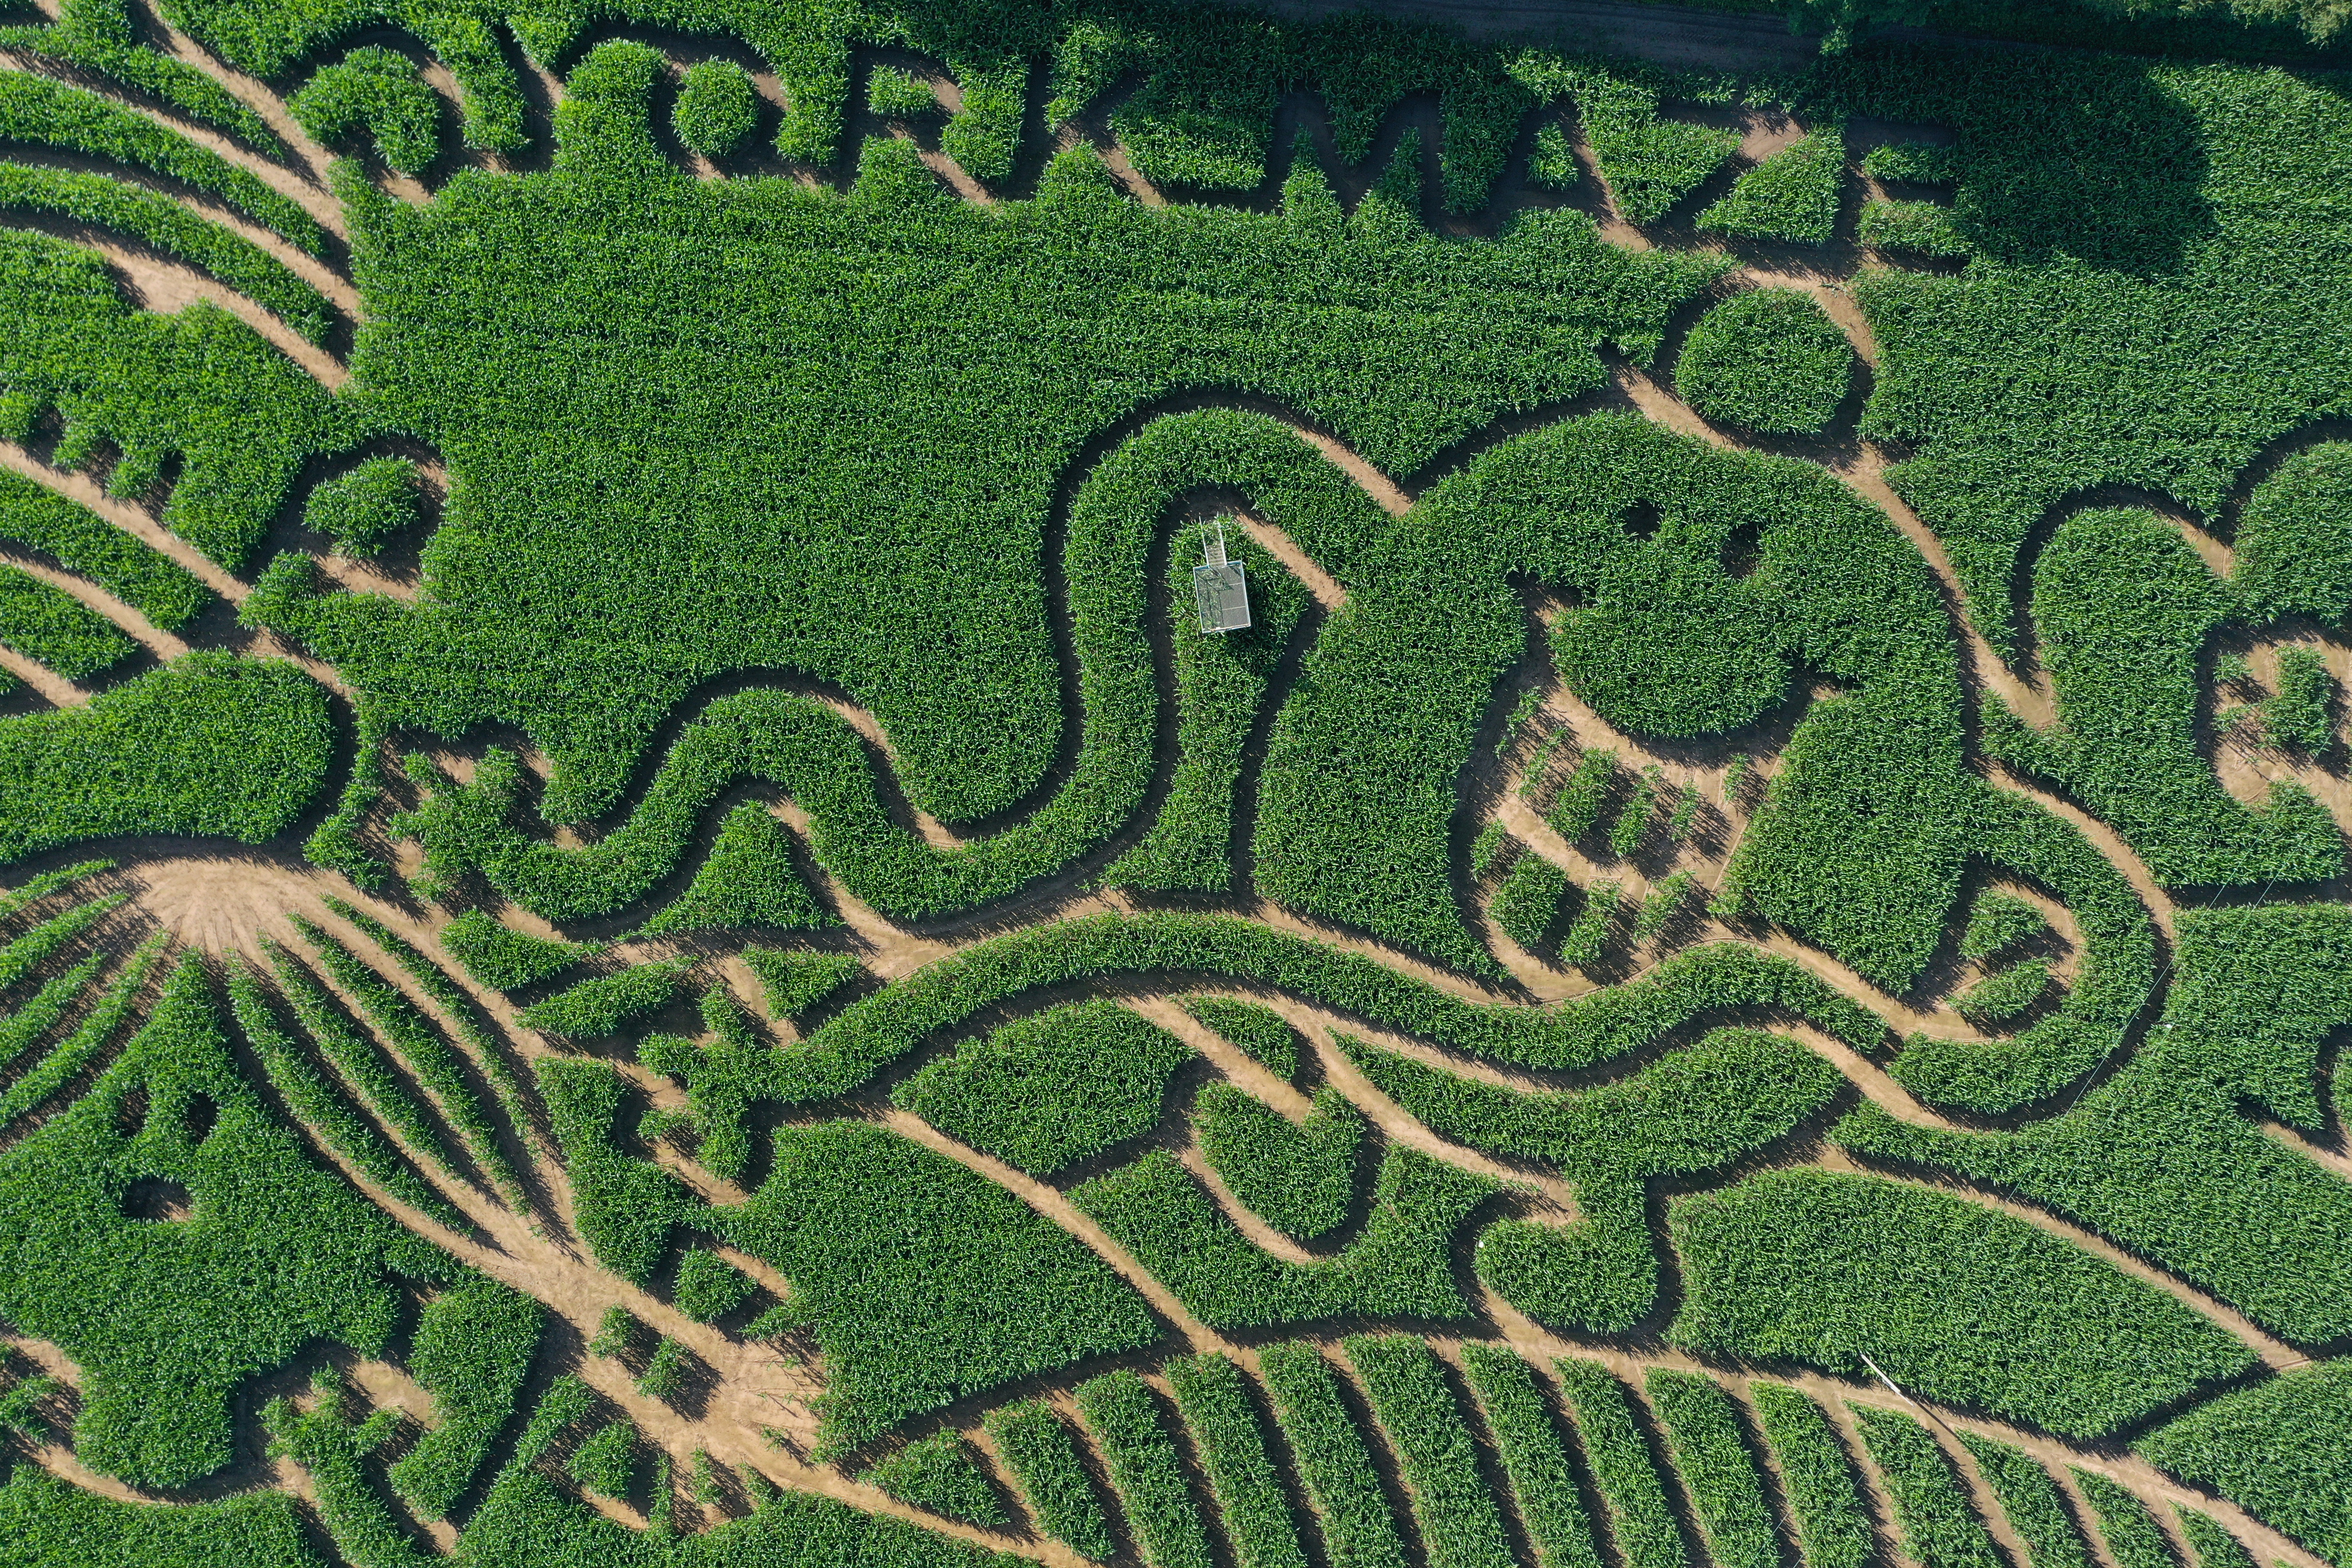 <p>The 2021 York Maze in York, North Yorkshire, created from over one million living, growing maize plants, which this year celebrates 50 years of Mr Men and Little Miss. Picture date: Friday July 16, 2021.</p>